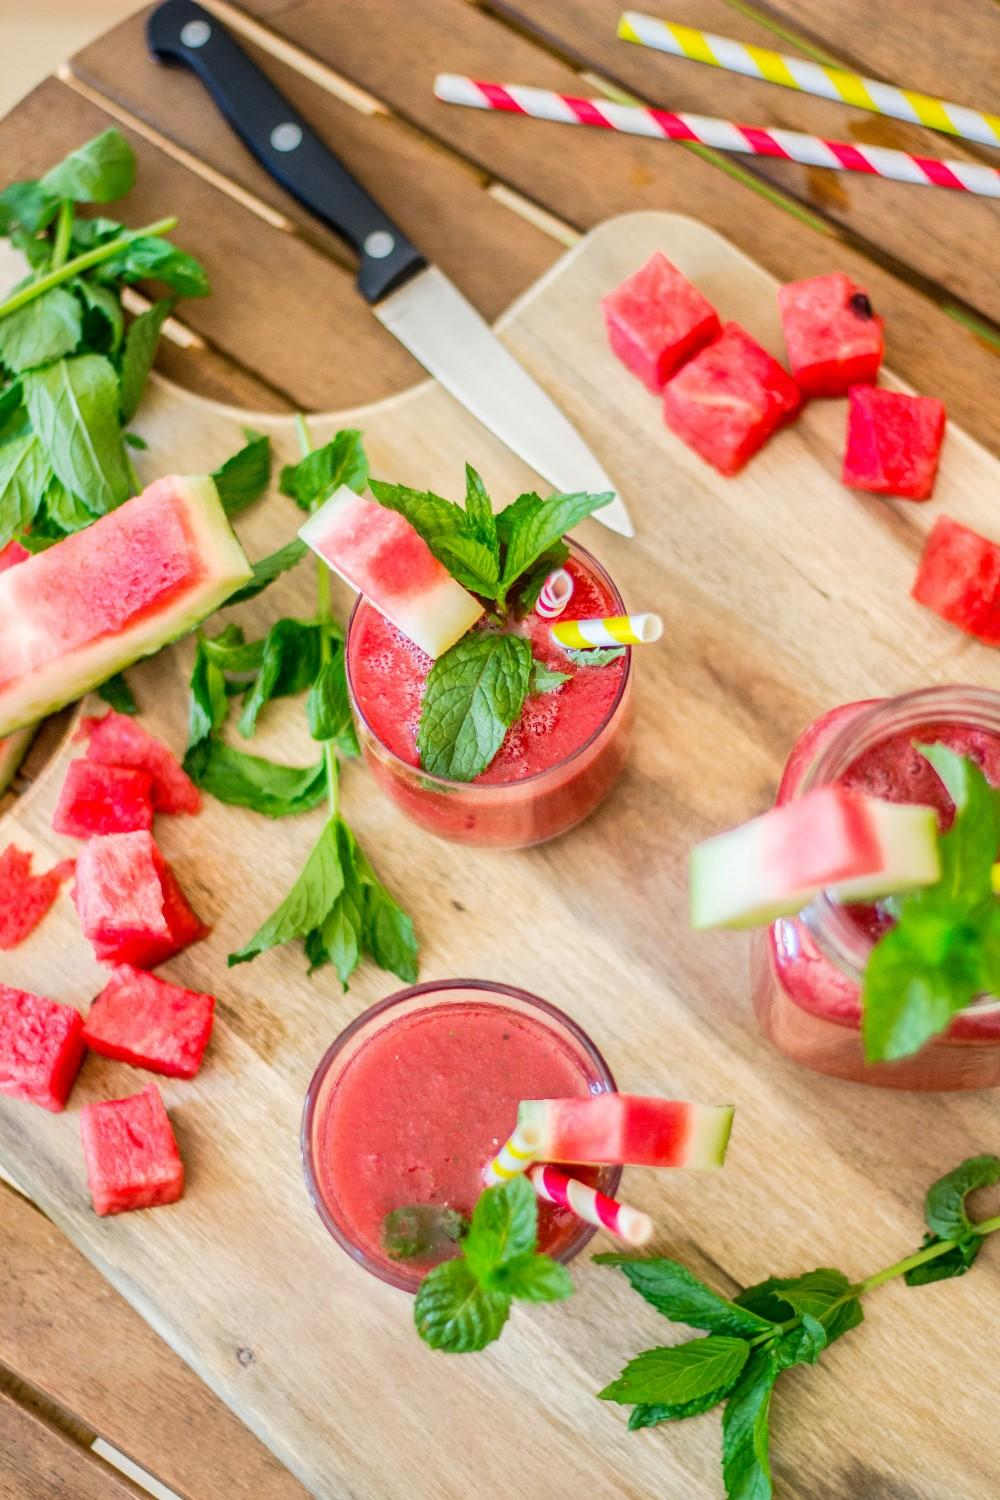 Use Your Noodles - Minty Watermelon Slushie Drink